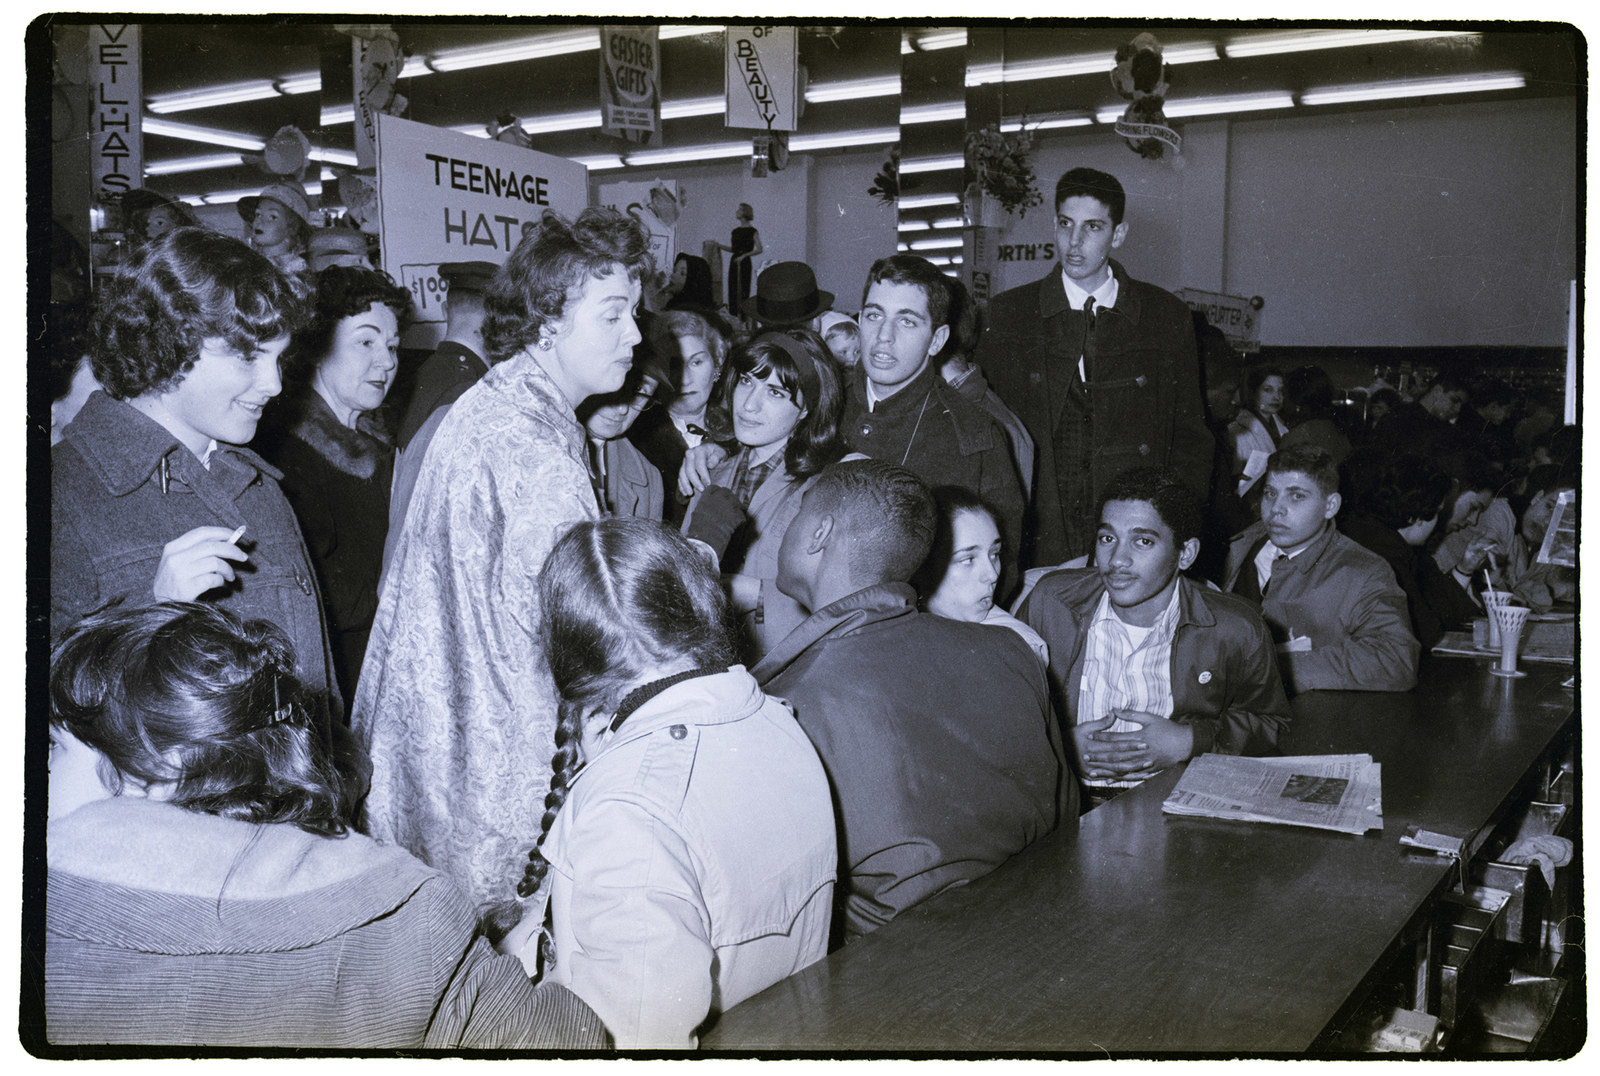 latinos during the 1960s Latino presence grows  during the 1960's the population in the united states grew from 3 million to more 1960's-latinos and native americans fight for equality latino population (americans of latin american decent) grew from 3 to 9 milliondocuments.